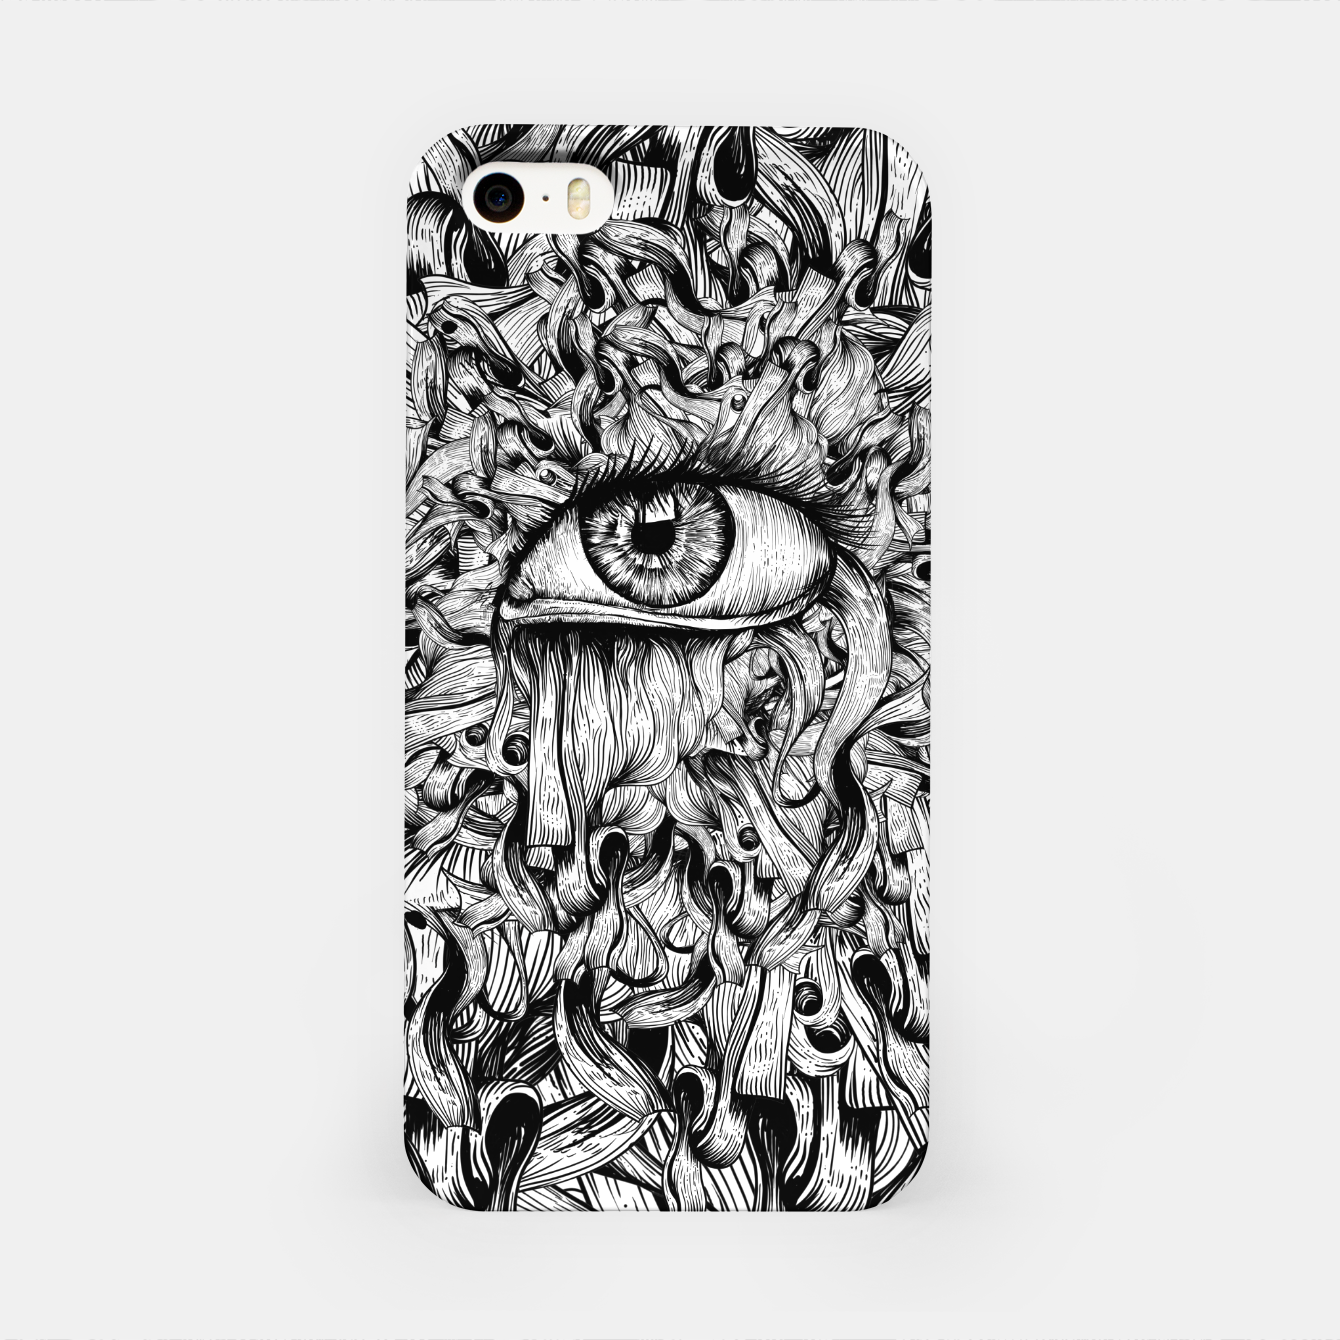 Foto Inked Eye iPhone Case - Live Heroes